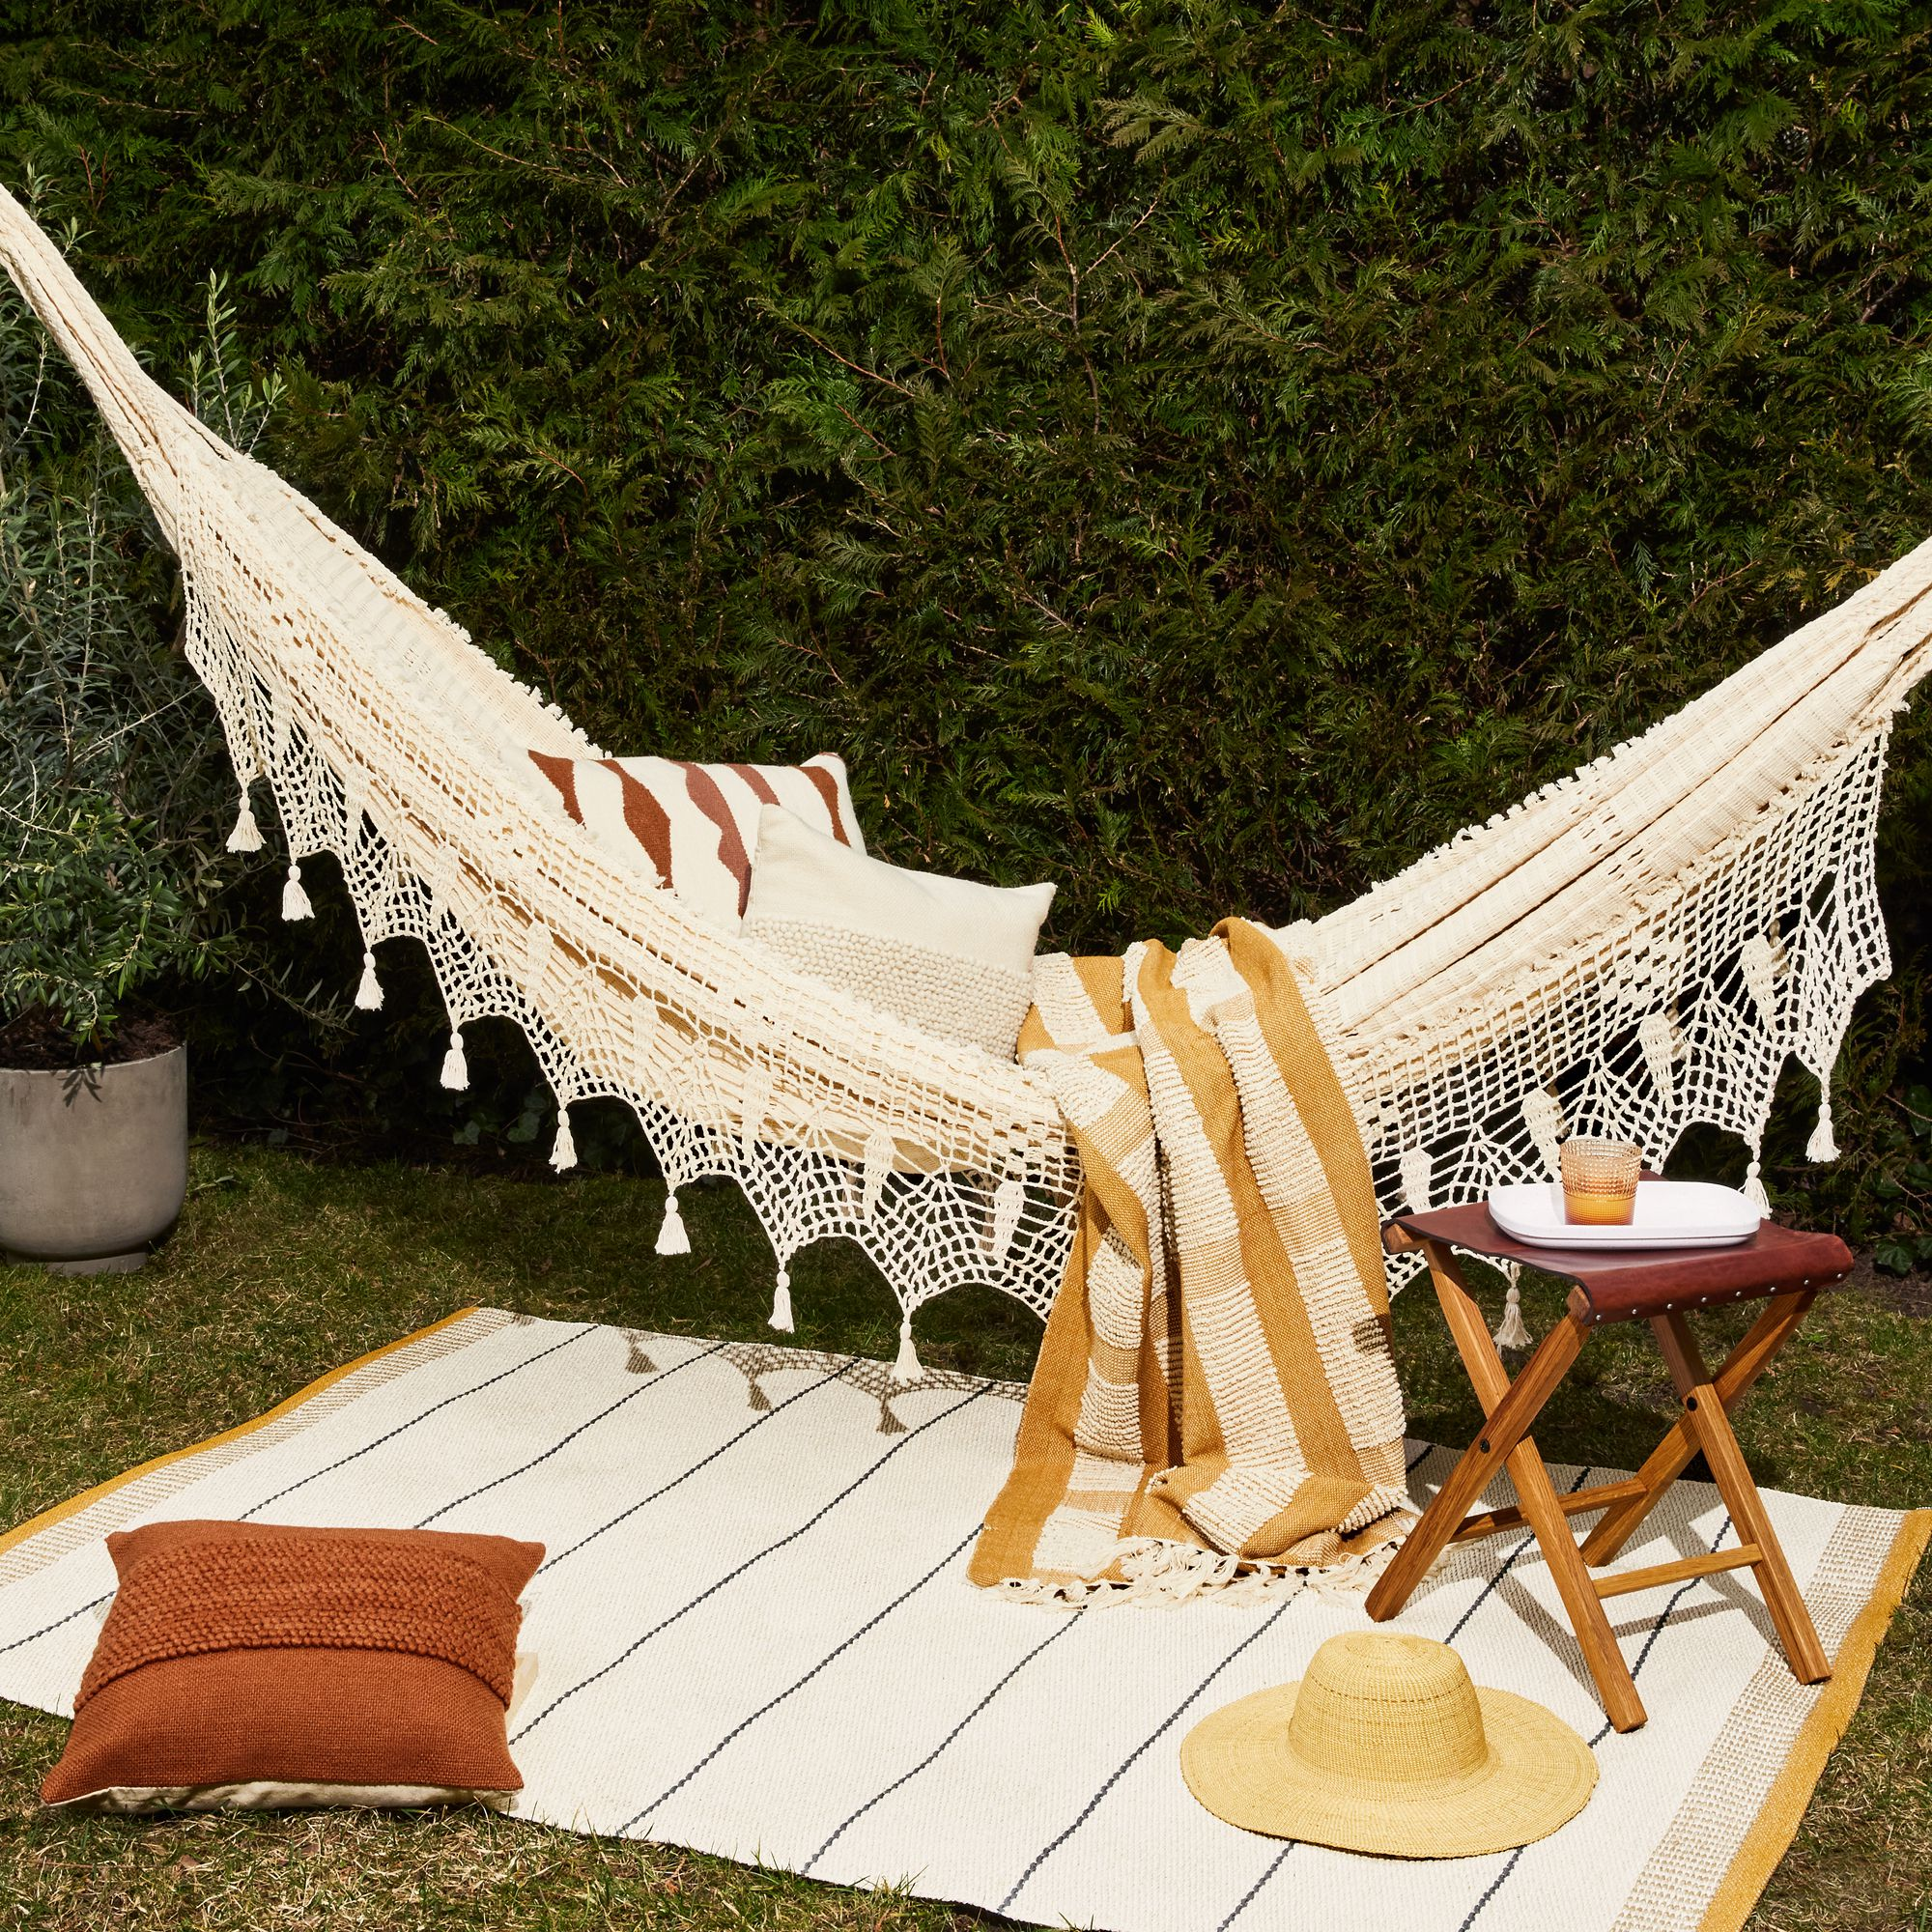 Under The Bough Handmade Natural Cotton Hammock with Fringe $180–$270